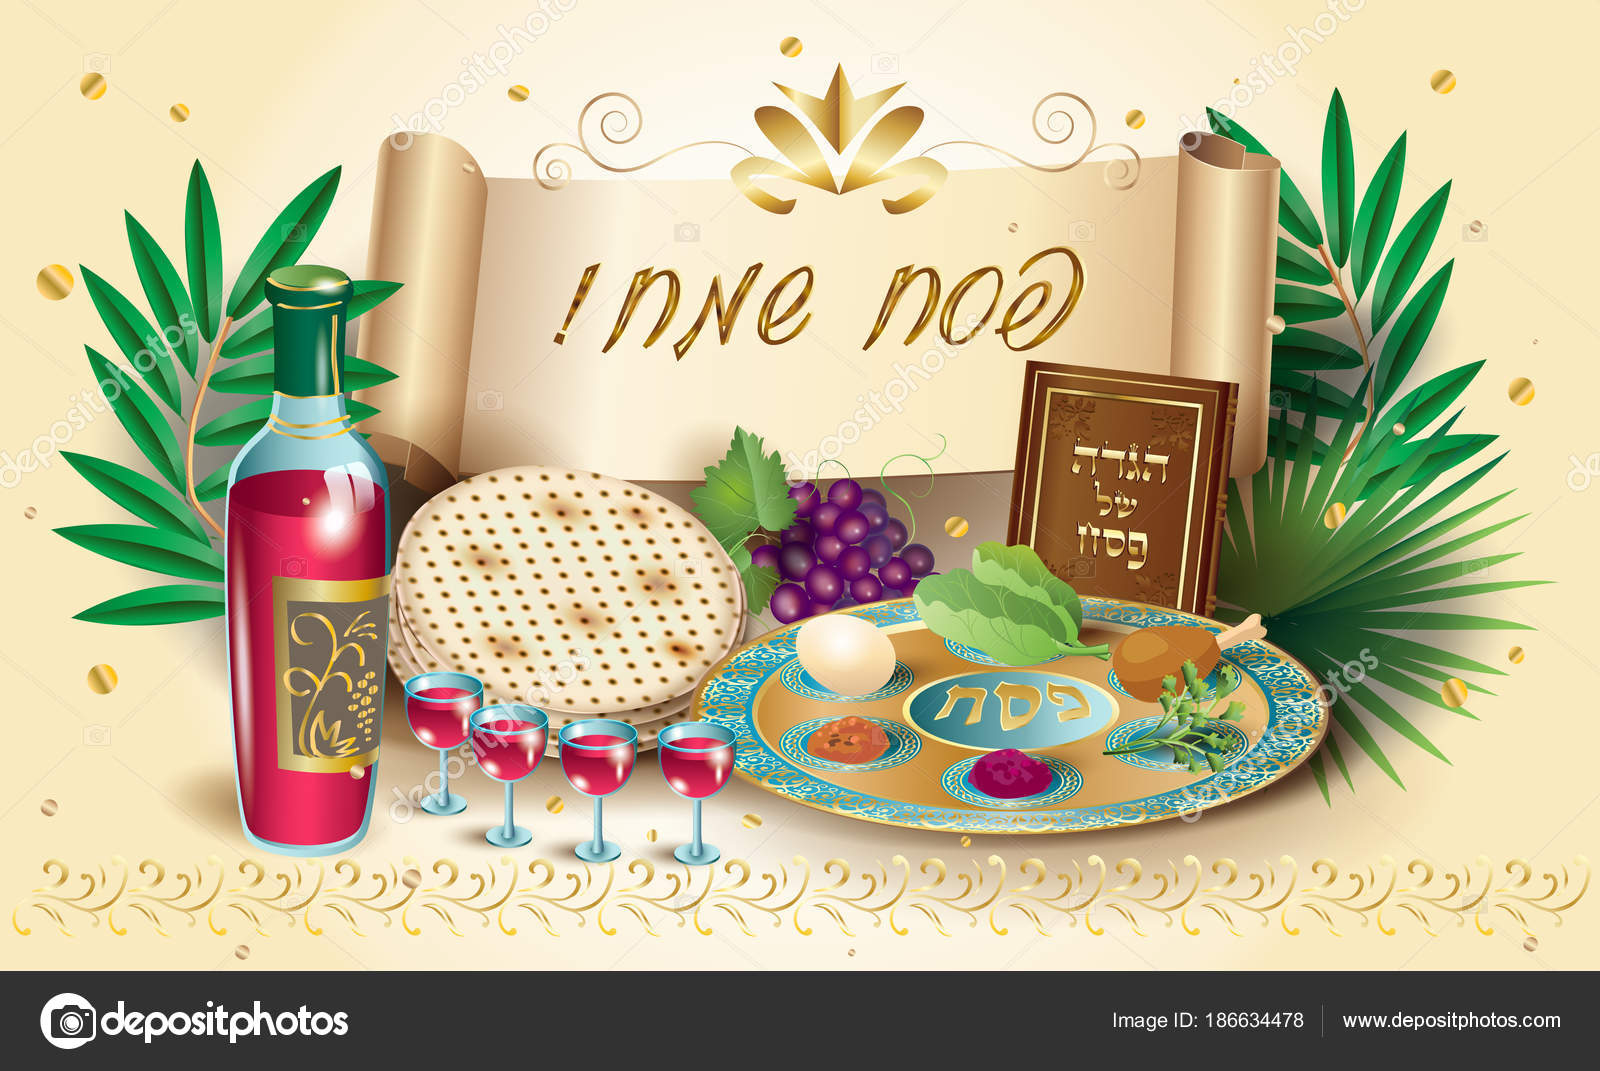 Happy passover holiday translate hebrew lettering greeting card happy passover holiday translate from hebrew lettering greeting card with decorative vintage floral frame four wine glass matza jewish traditional m4hsunfo Choice Image